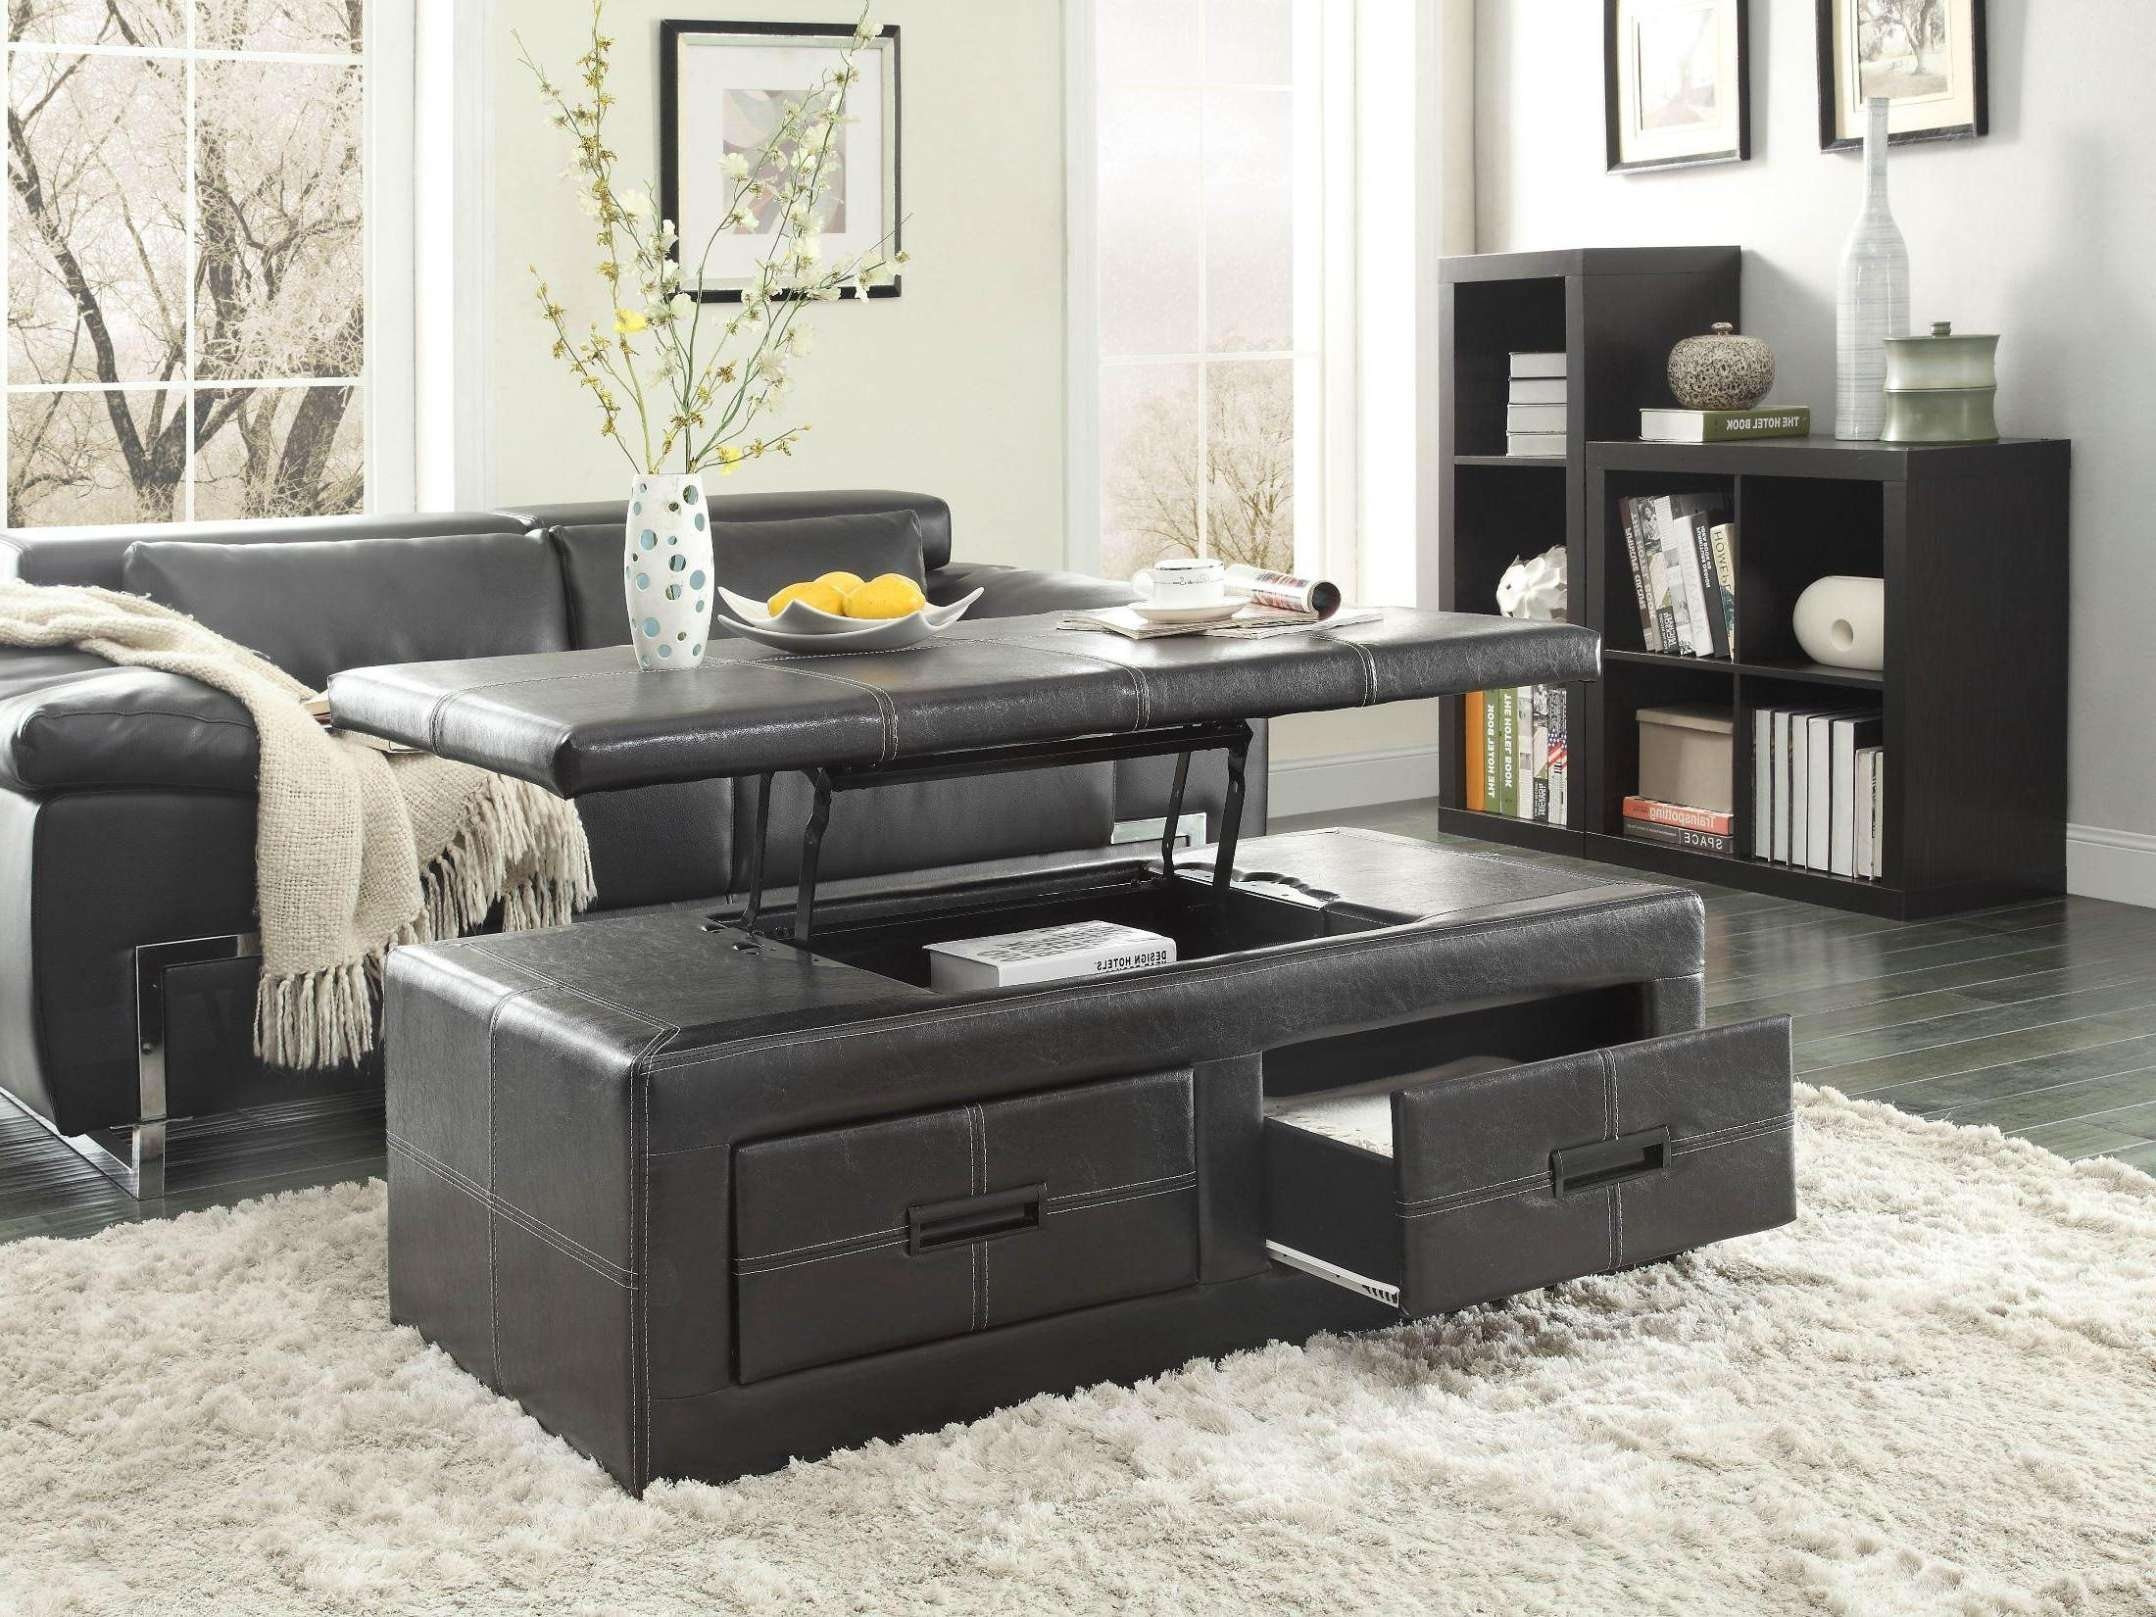 Coffee Tables : Parsons Lift Top Coffee Table In Black That Lifts Throughout Preferred Lift Top Coffee Tables With Storage (View 6 of 20)